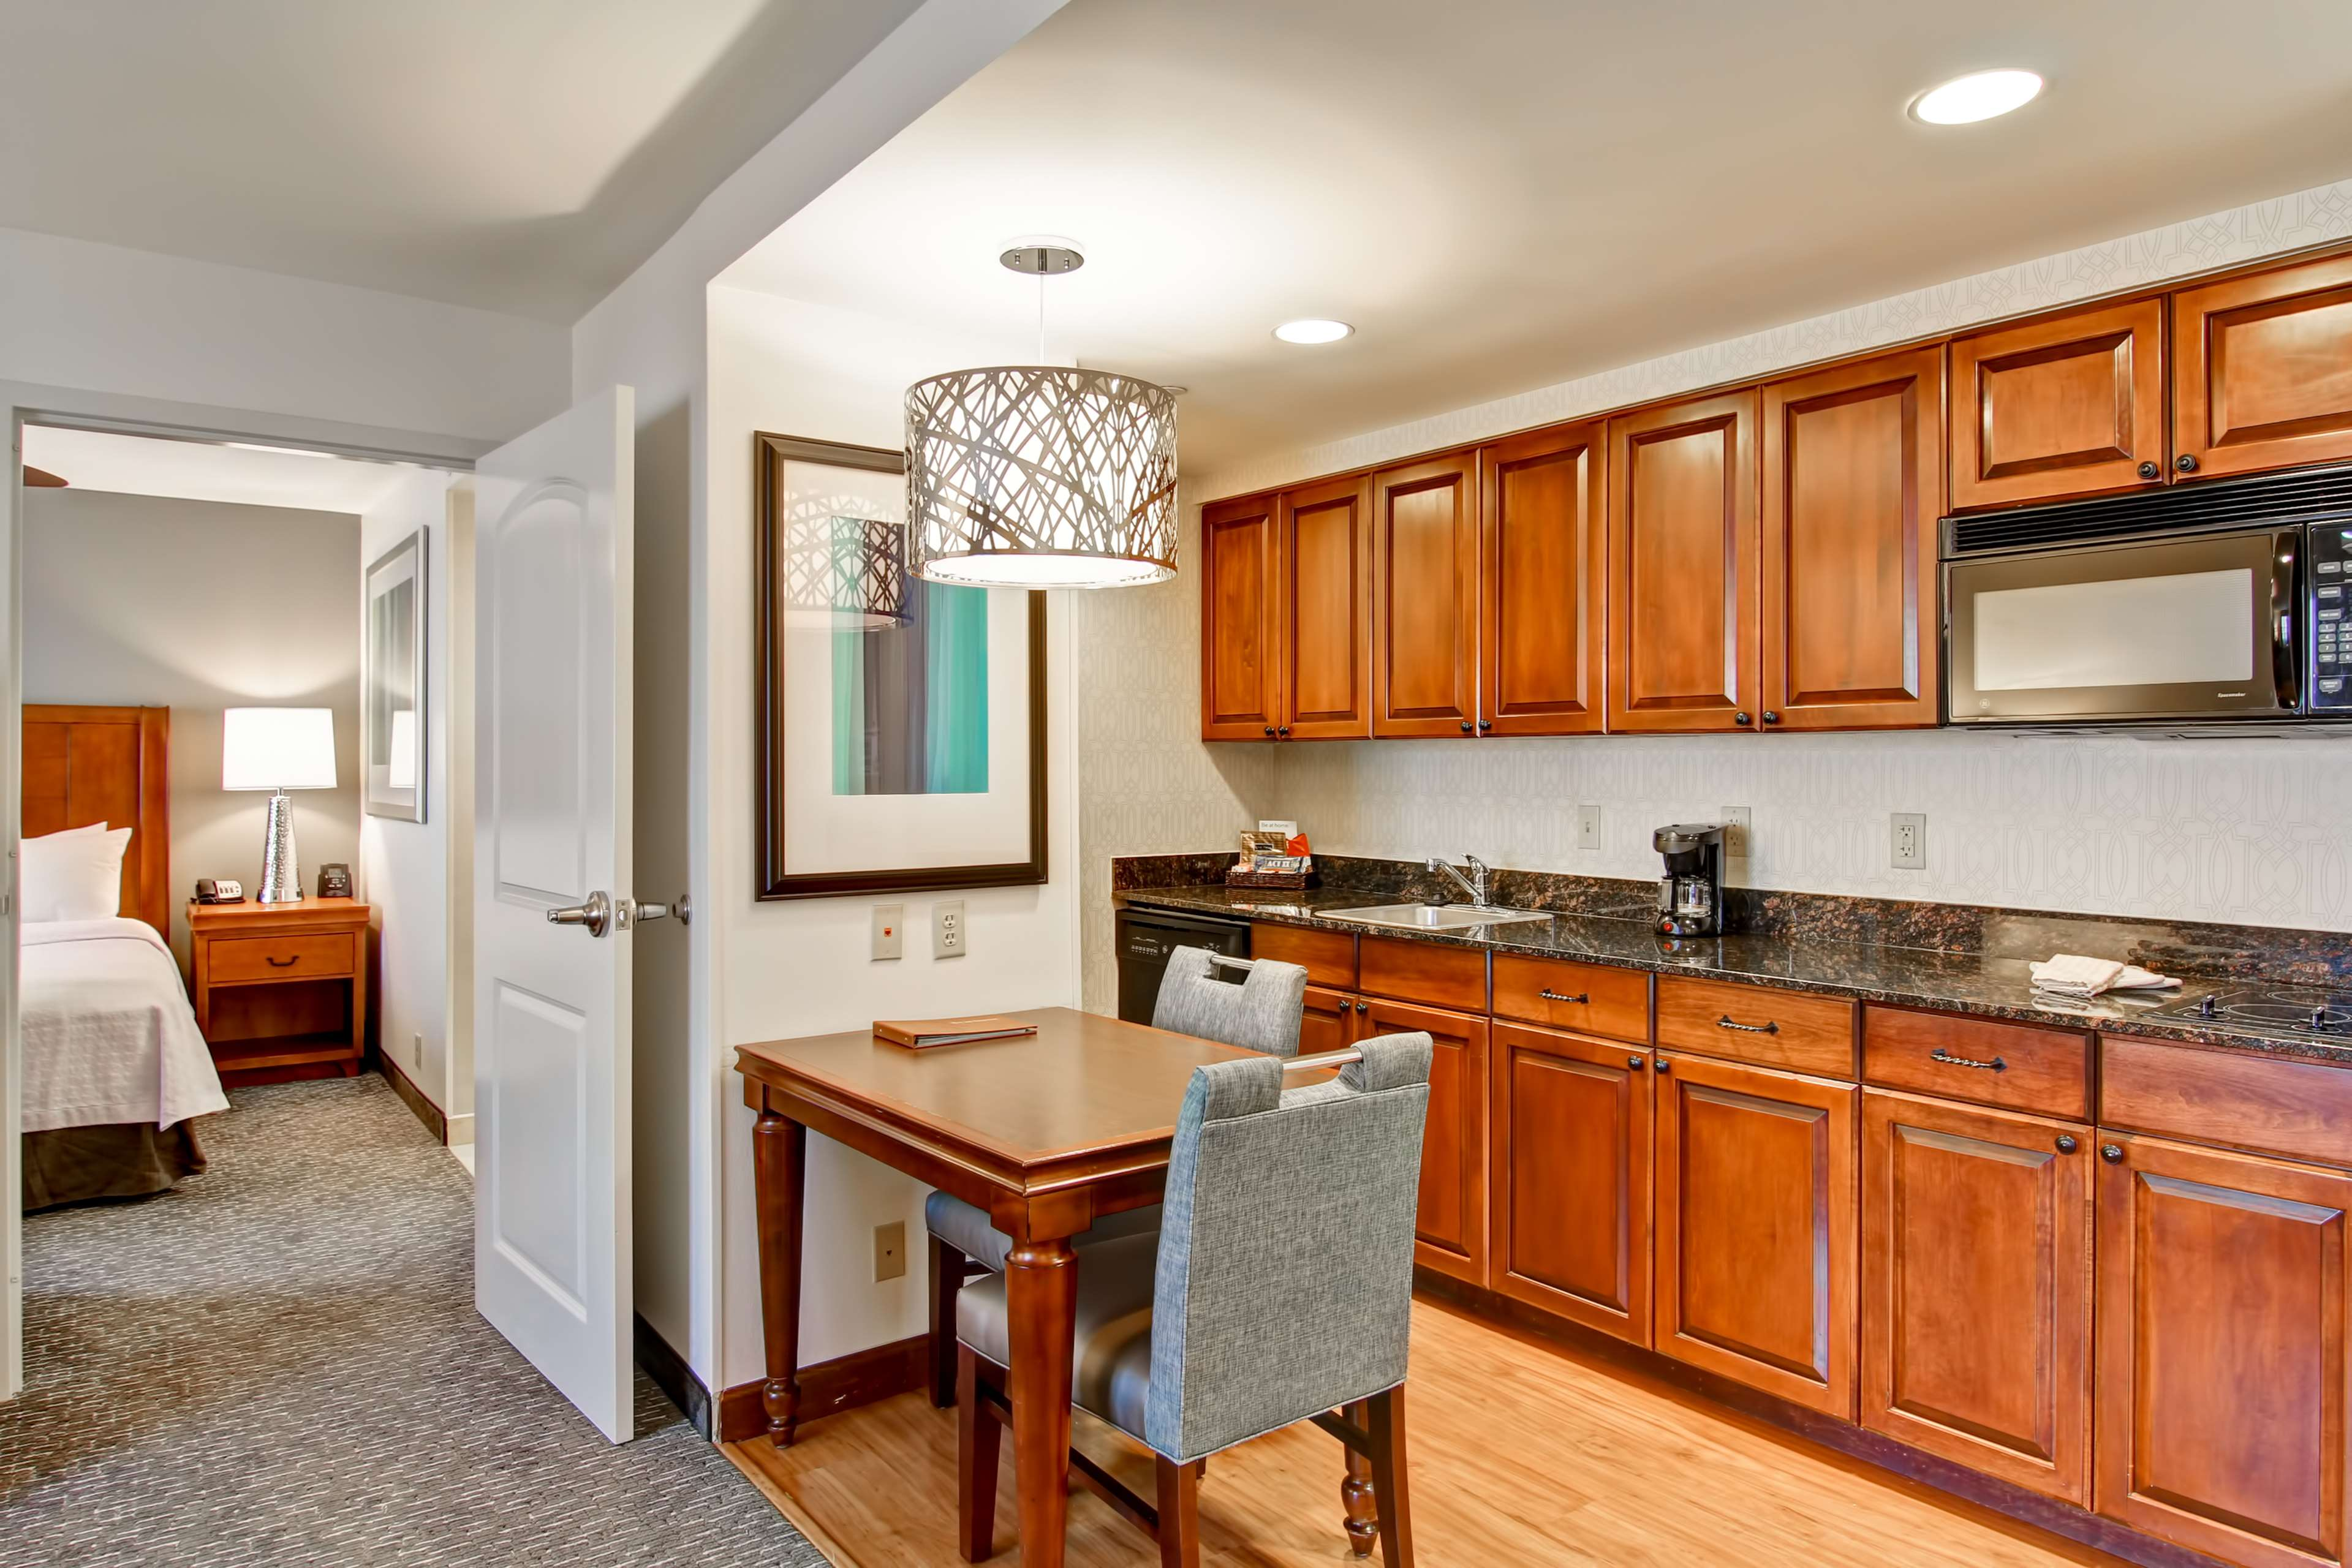 Homewood Suites by Hilton Bentonville-Rogers image 23